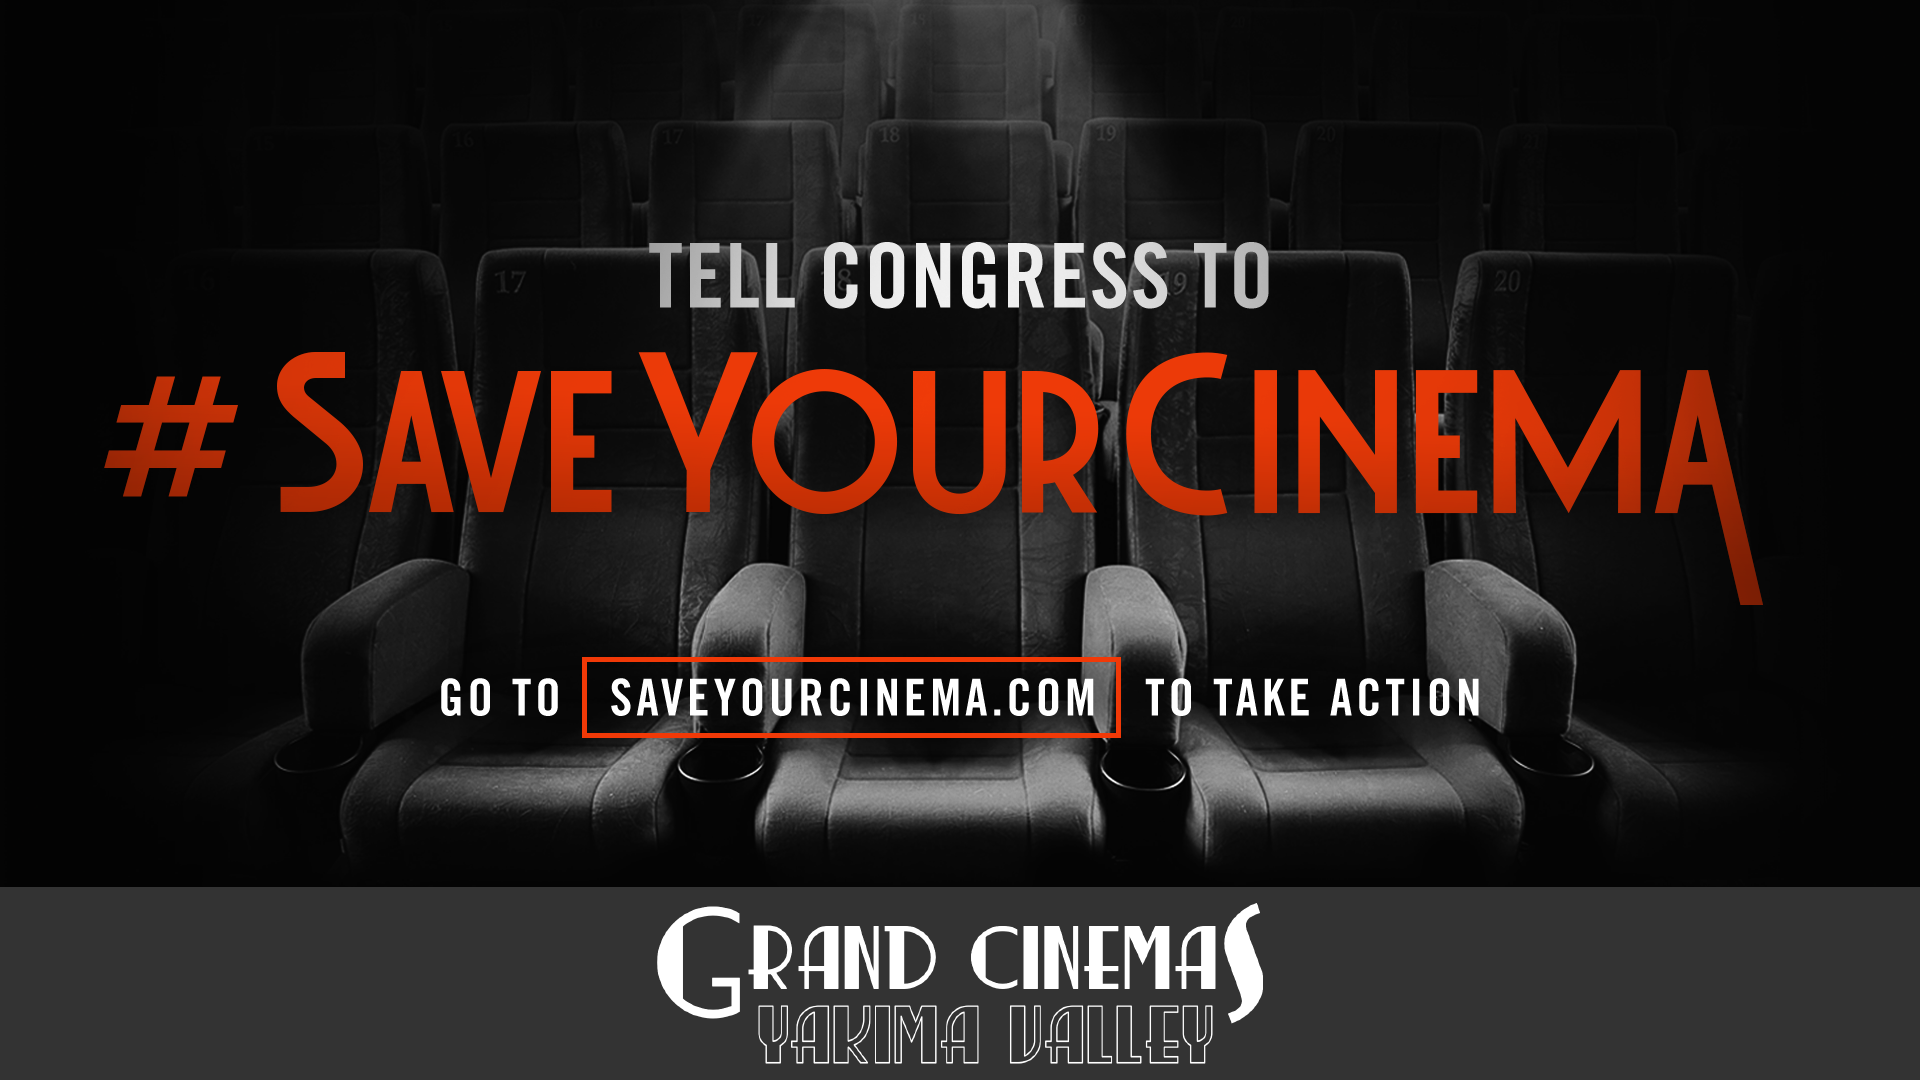 Movie theaters need our help! Without government aid, theaters across America are at risk of permanently closing. Act now and send a letter to tell your legislators to #SaveYourCinema: http://saveyourcinema.com